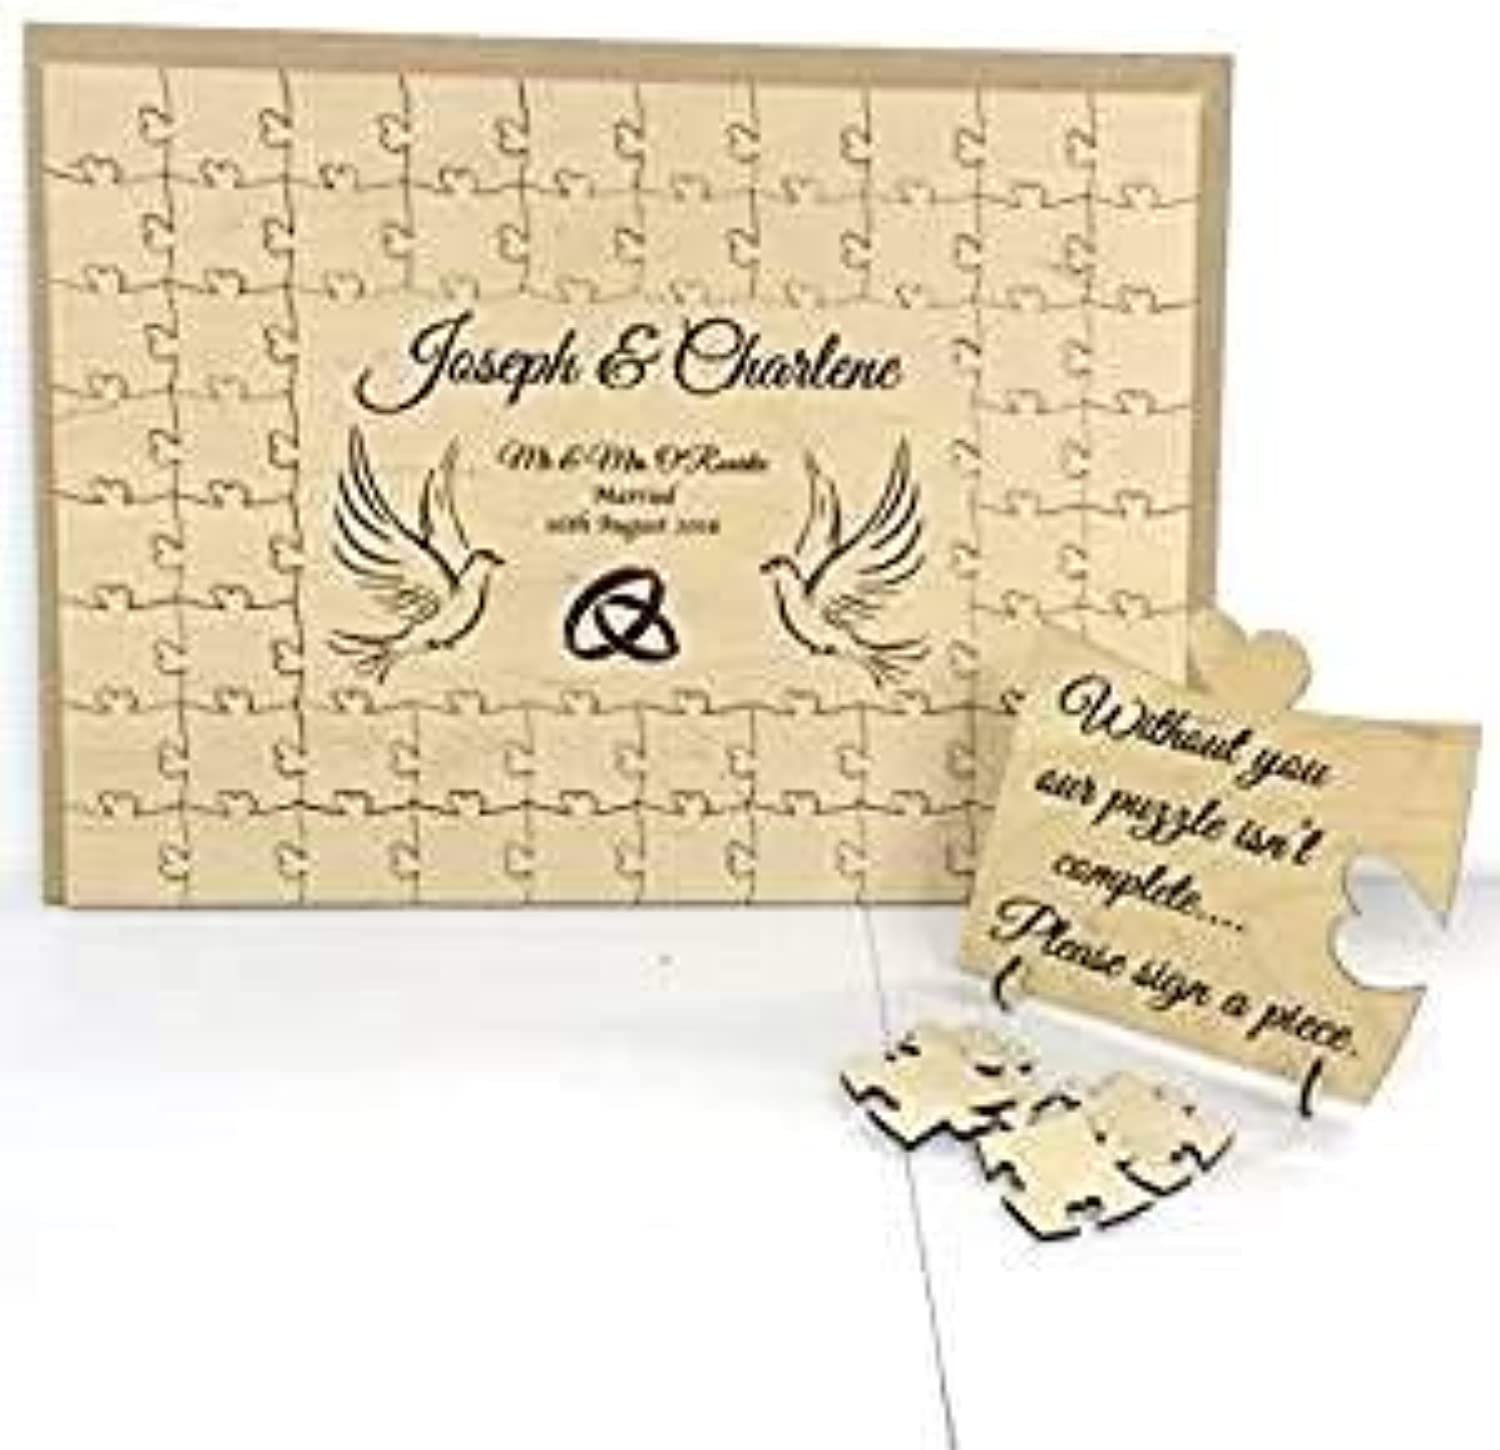 FSSS Ltd Personalised wooden doves wedding guest book jigsaw puzzle 104 pieces 660x300mm (27  x 12 )